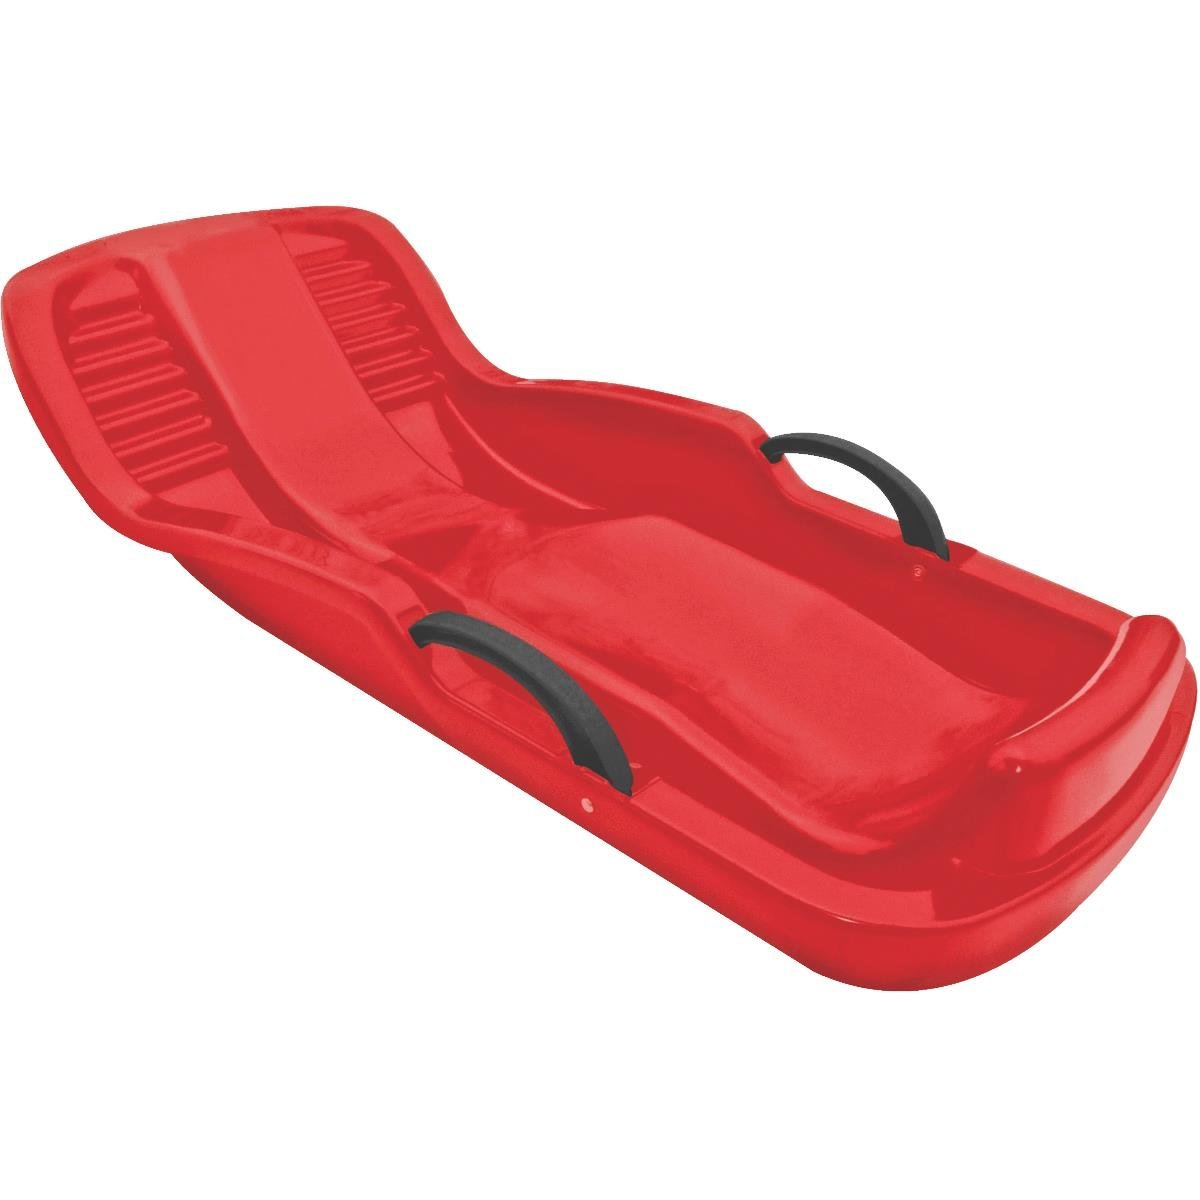 1200x1200 Flexible Flyer Winter Heat Eco Snow Sled